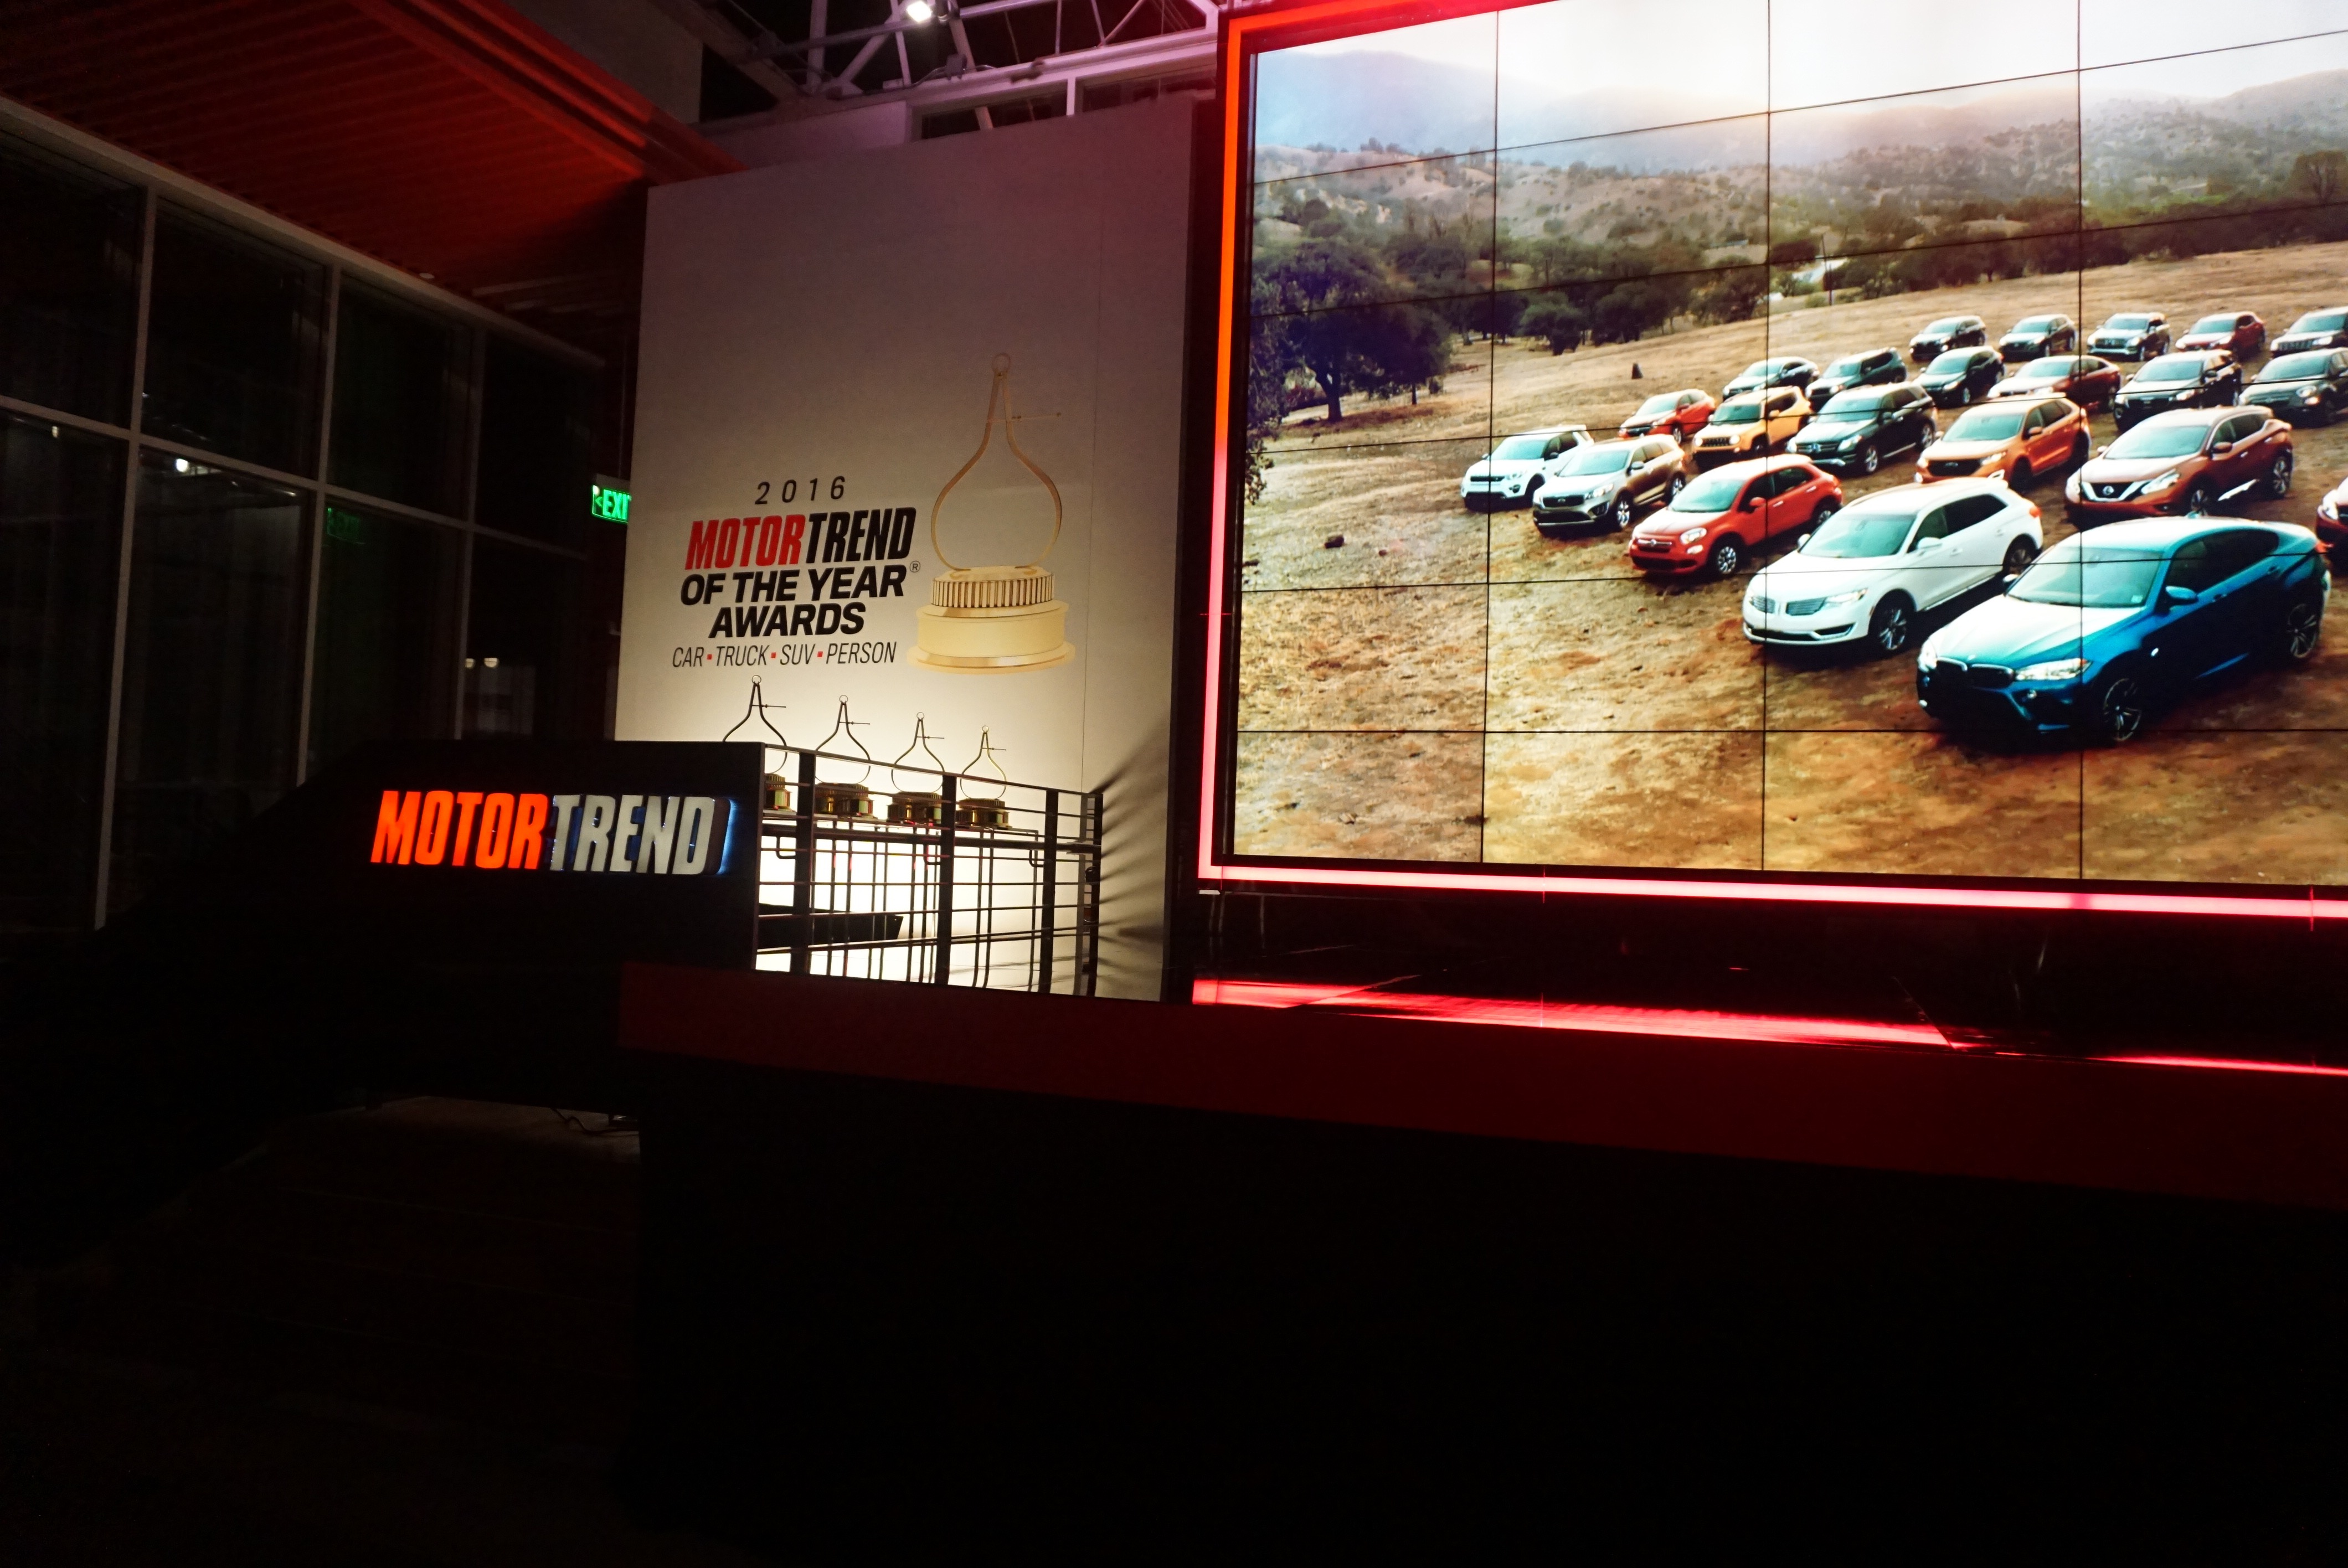 La Auto Show Set To Reveal The Latest Cars And Auto Technology